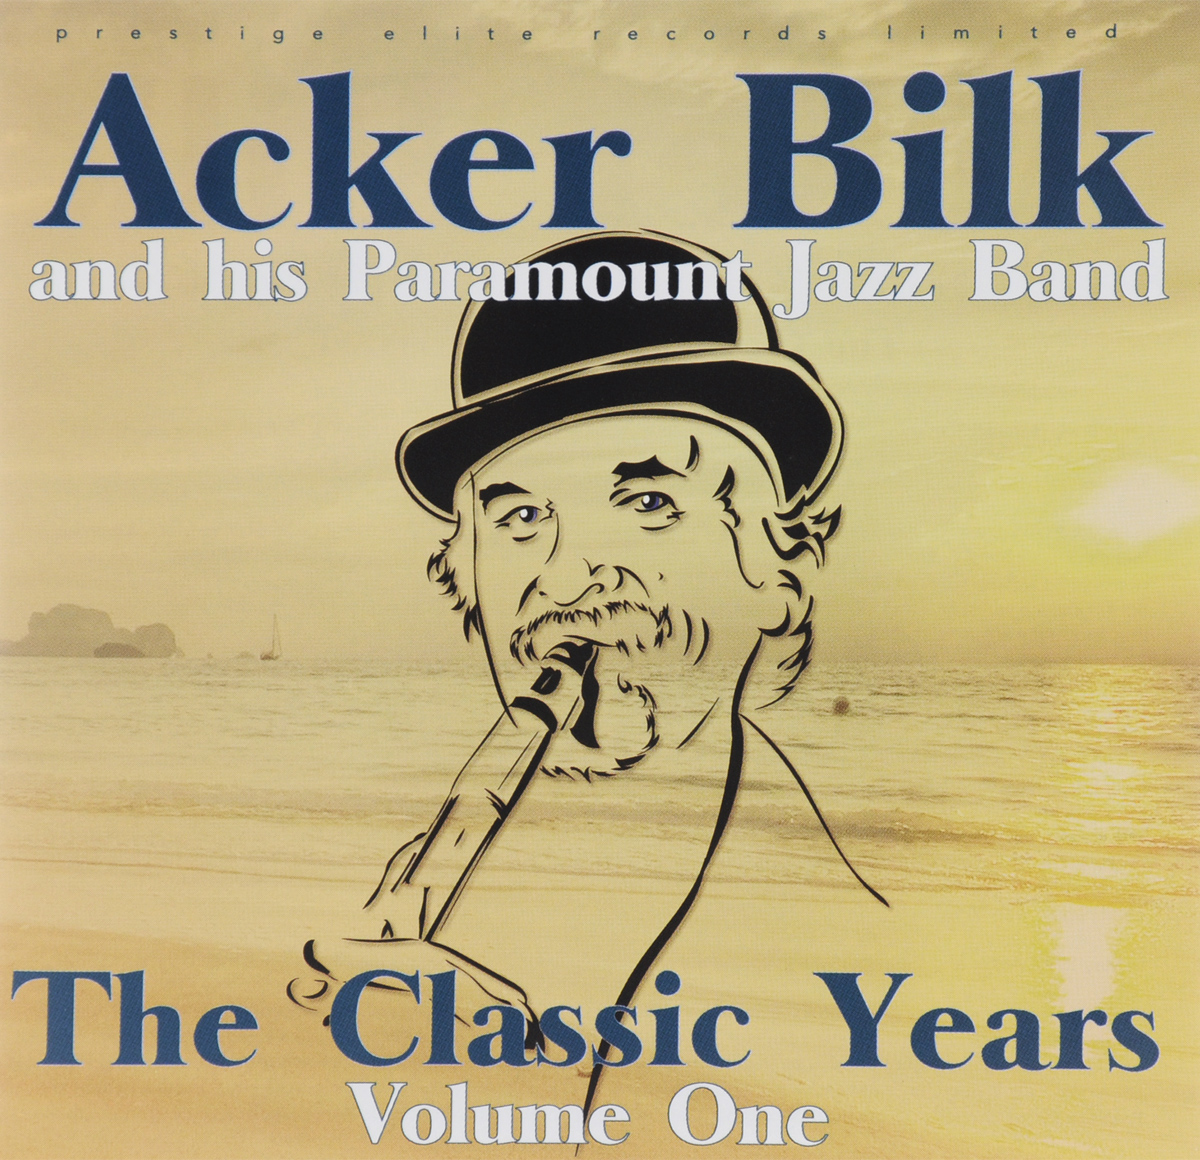 Acker Bilk and His Paramount Jazz Band Acker Bilk and His Paramount Jazz Band. Classic Years. Volume One ken colyer s jazzmen кен колайер ken colyer s skiffle group mr acker bilk